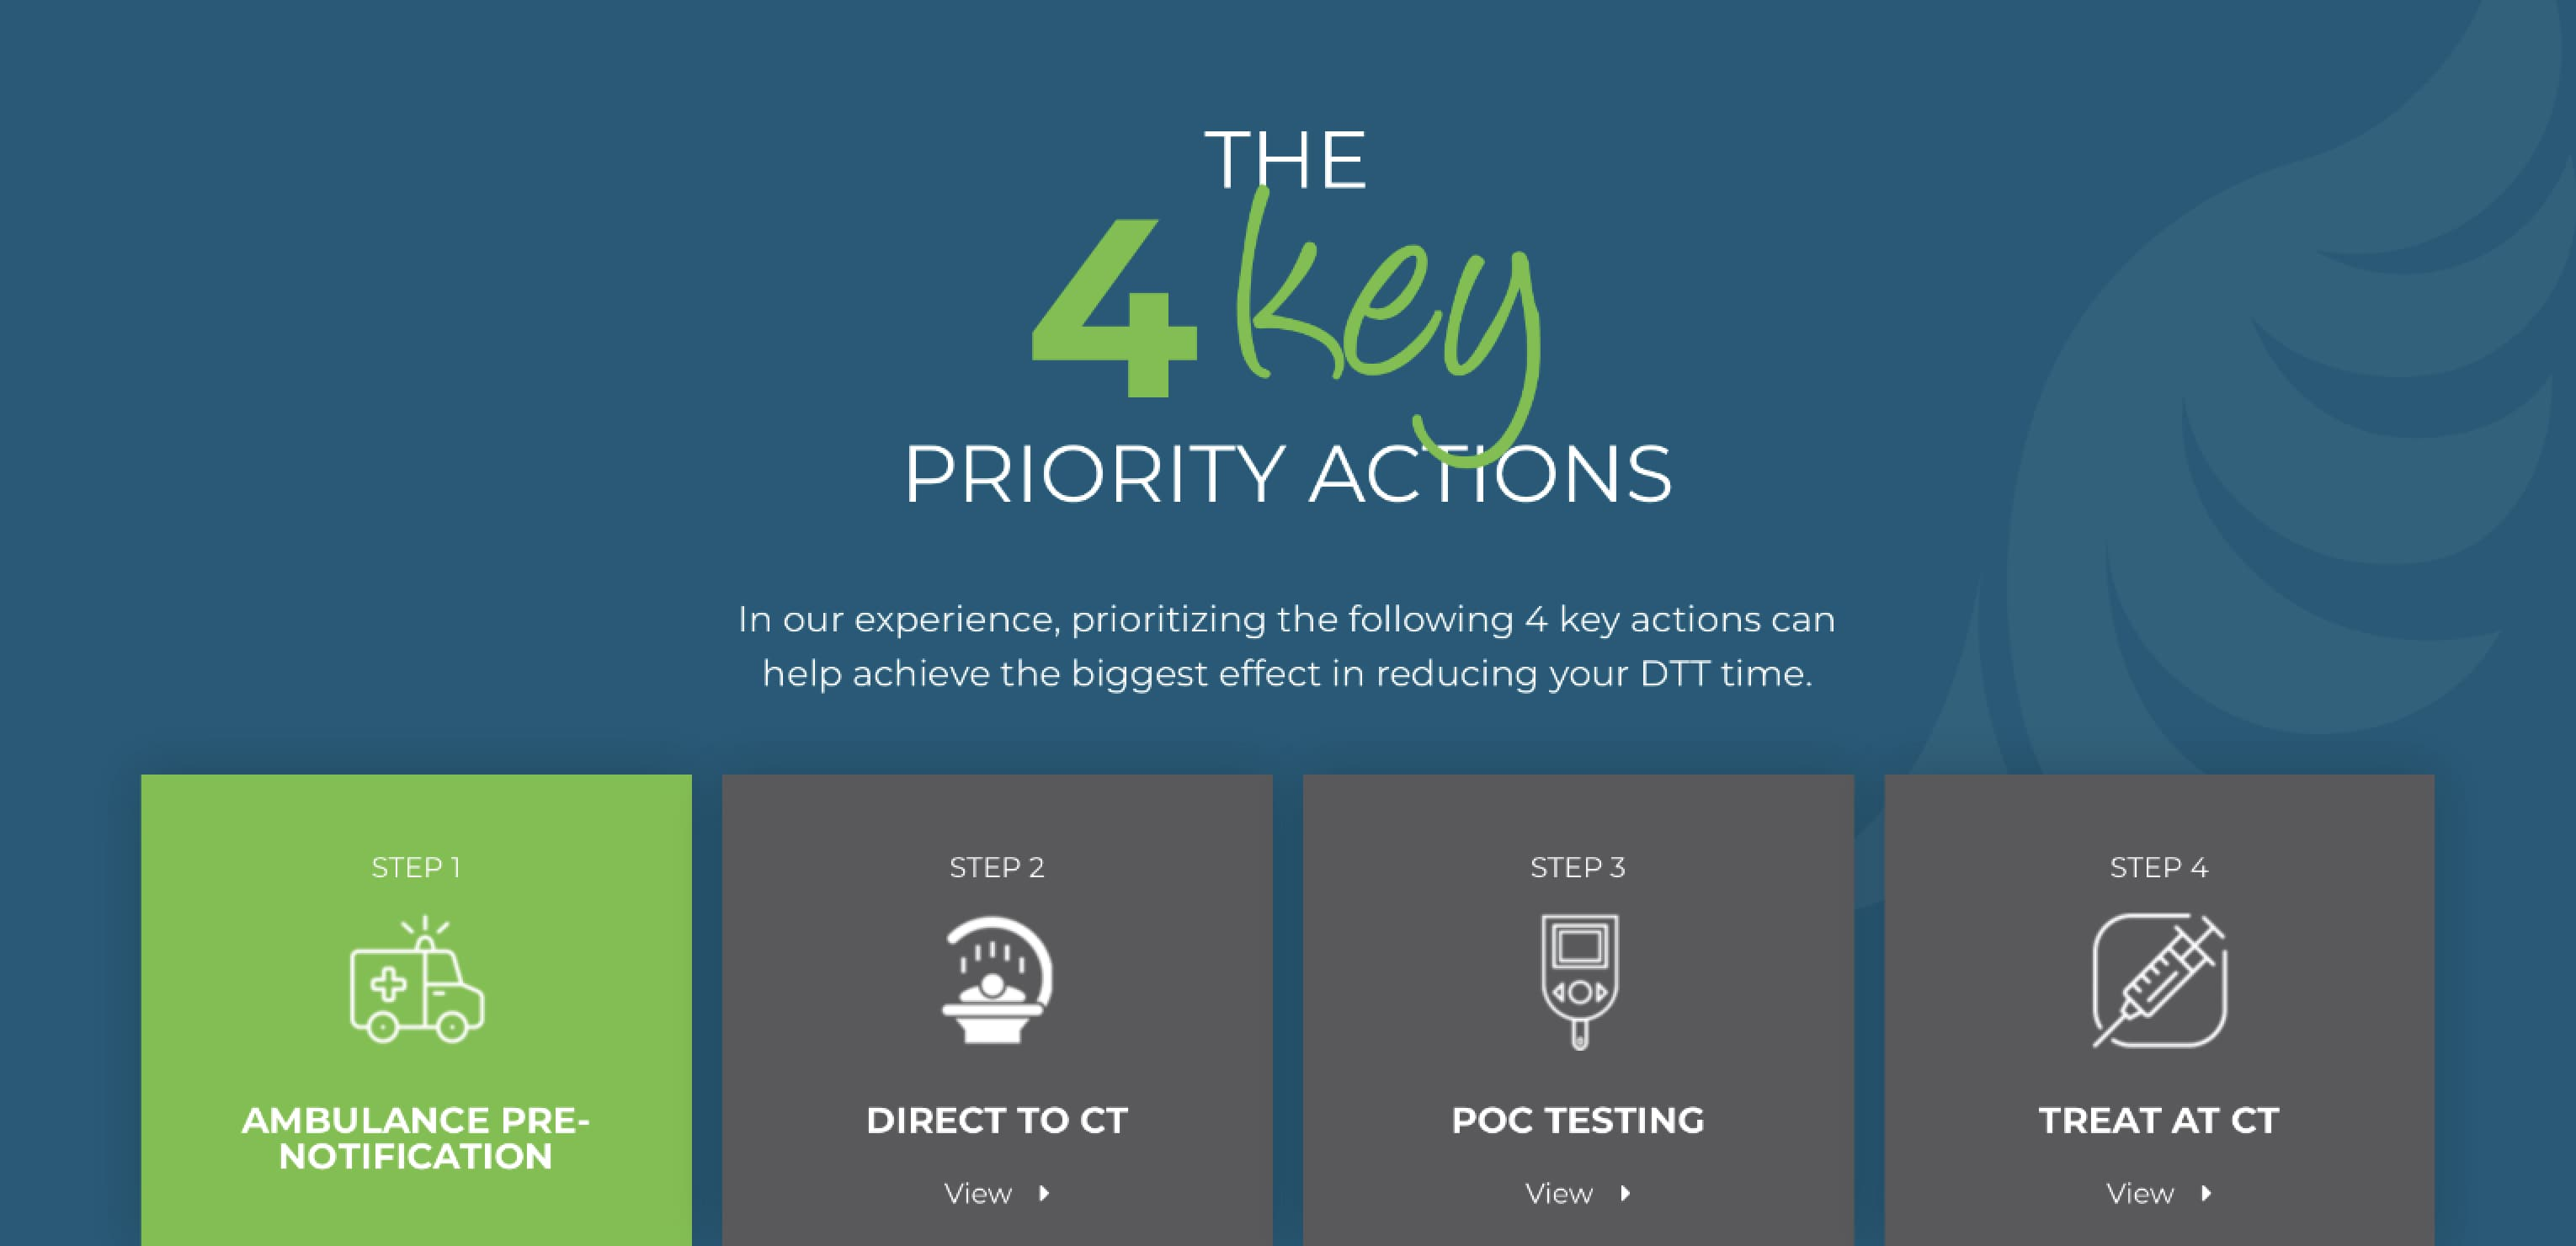 The 4 key actions